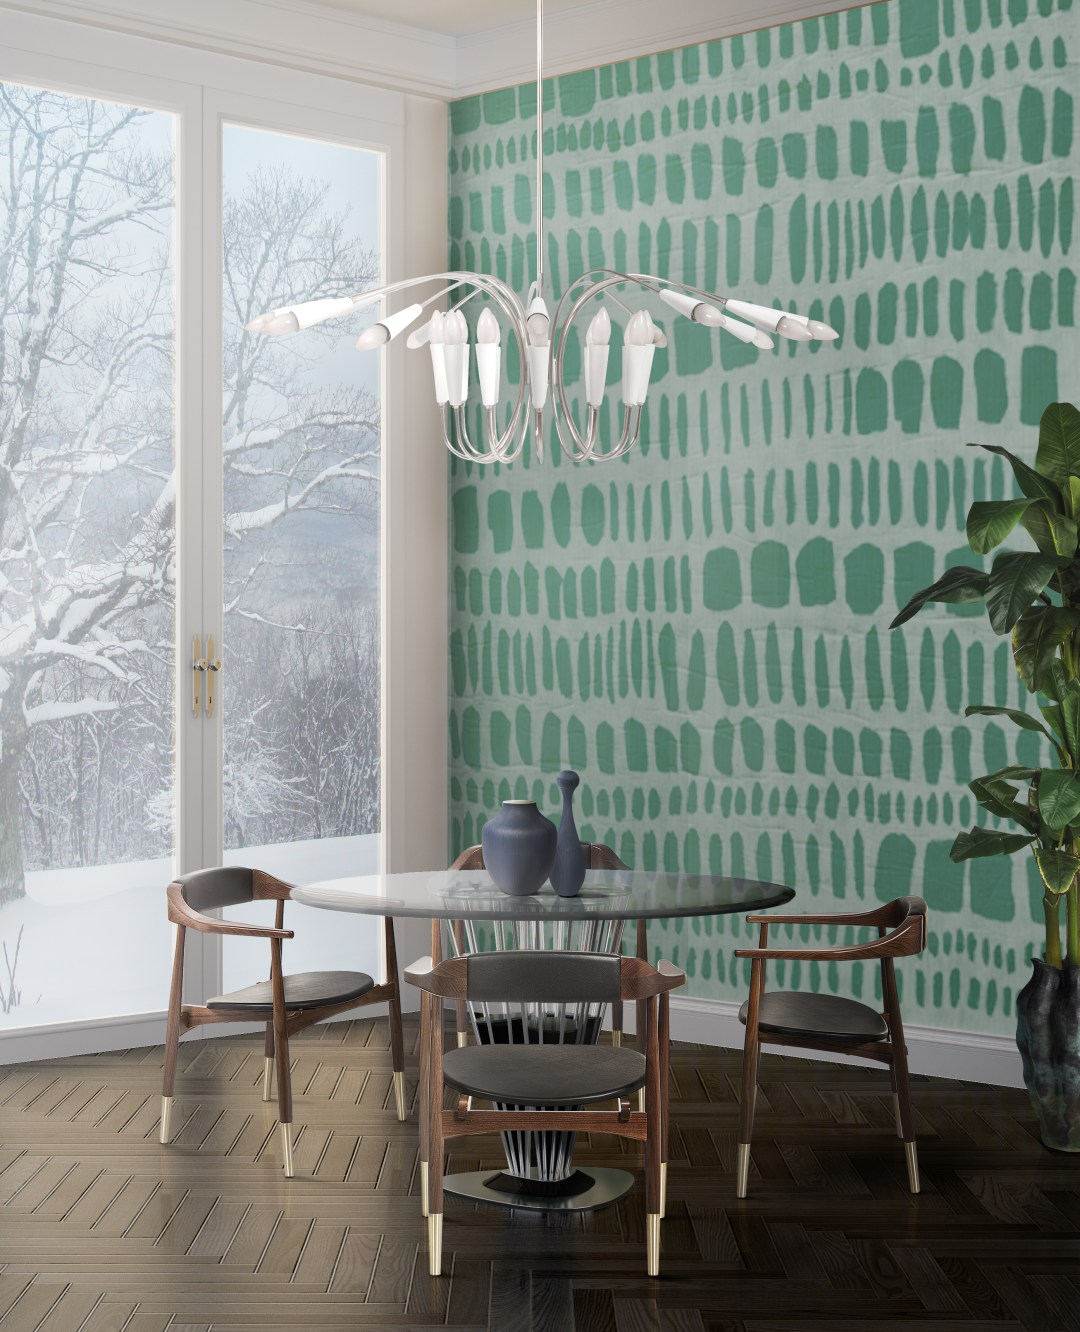 DelightFULL-Winter-Dining-RoomSoft-green-and-white-lamp-1783518-1440x1776 Inspired By Nature: How to Add Green to Your Home